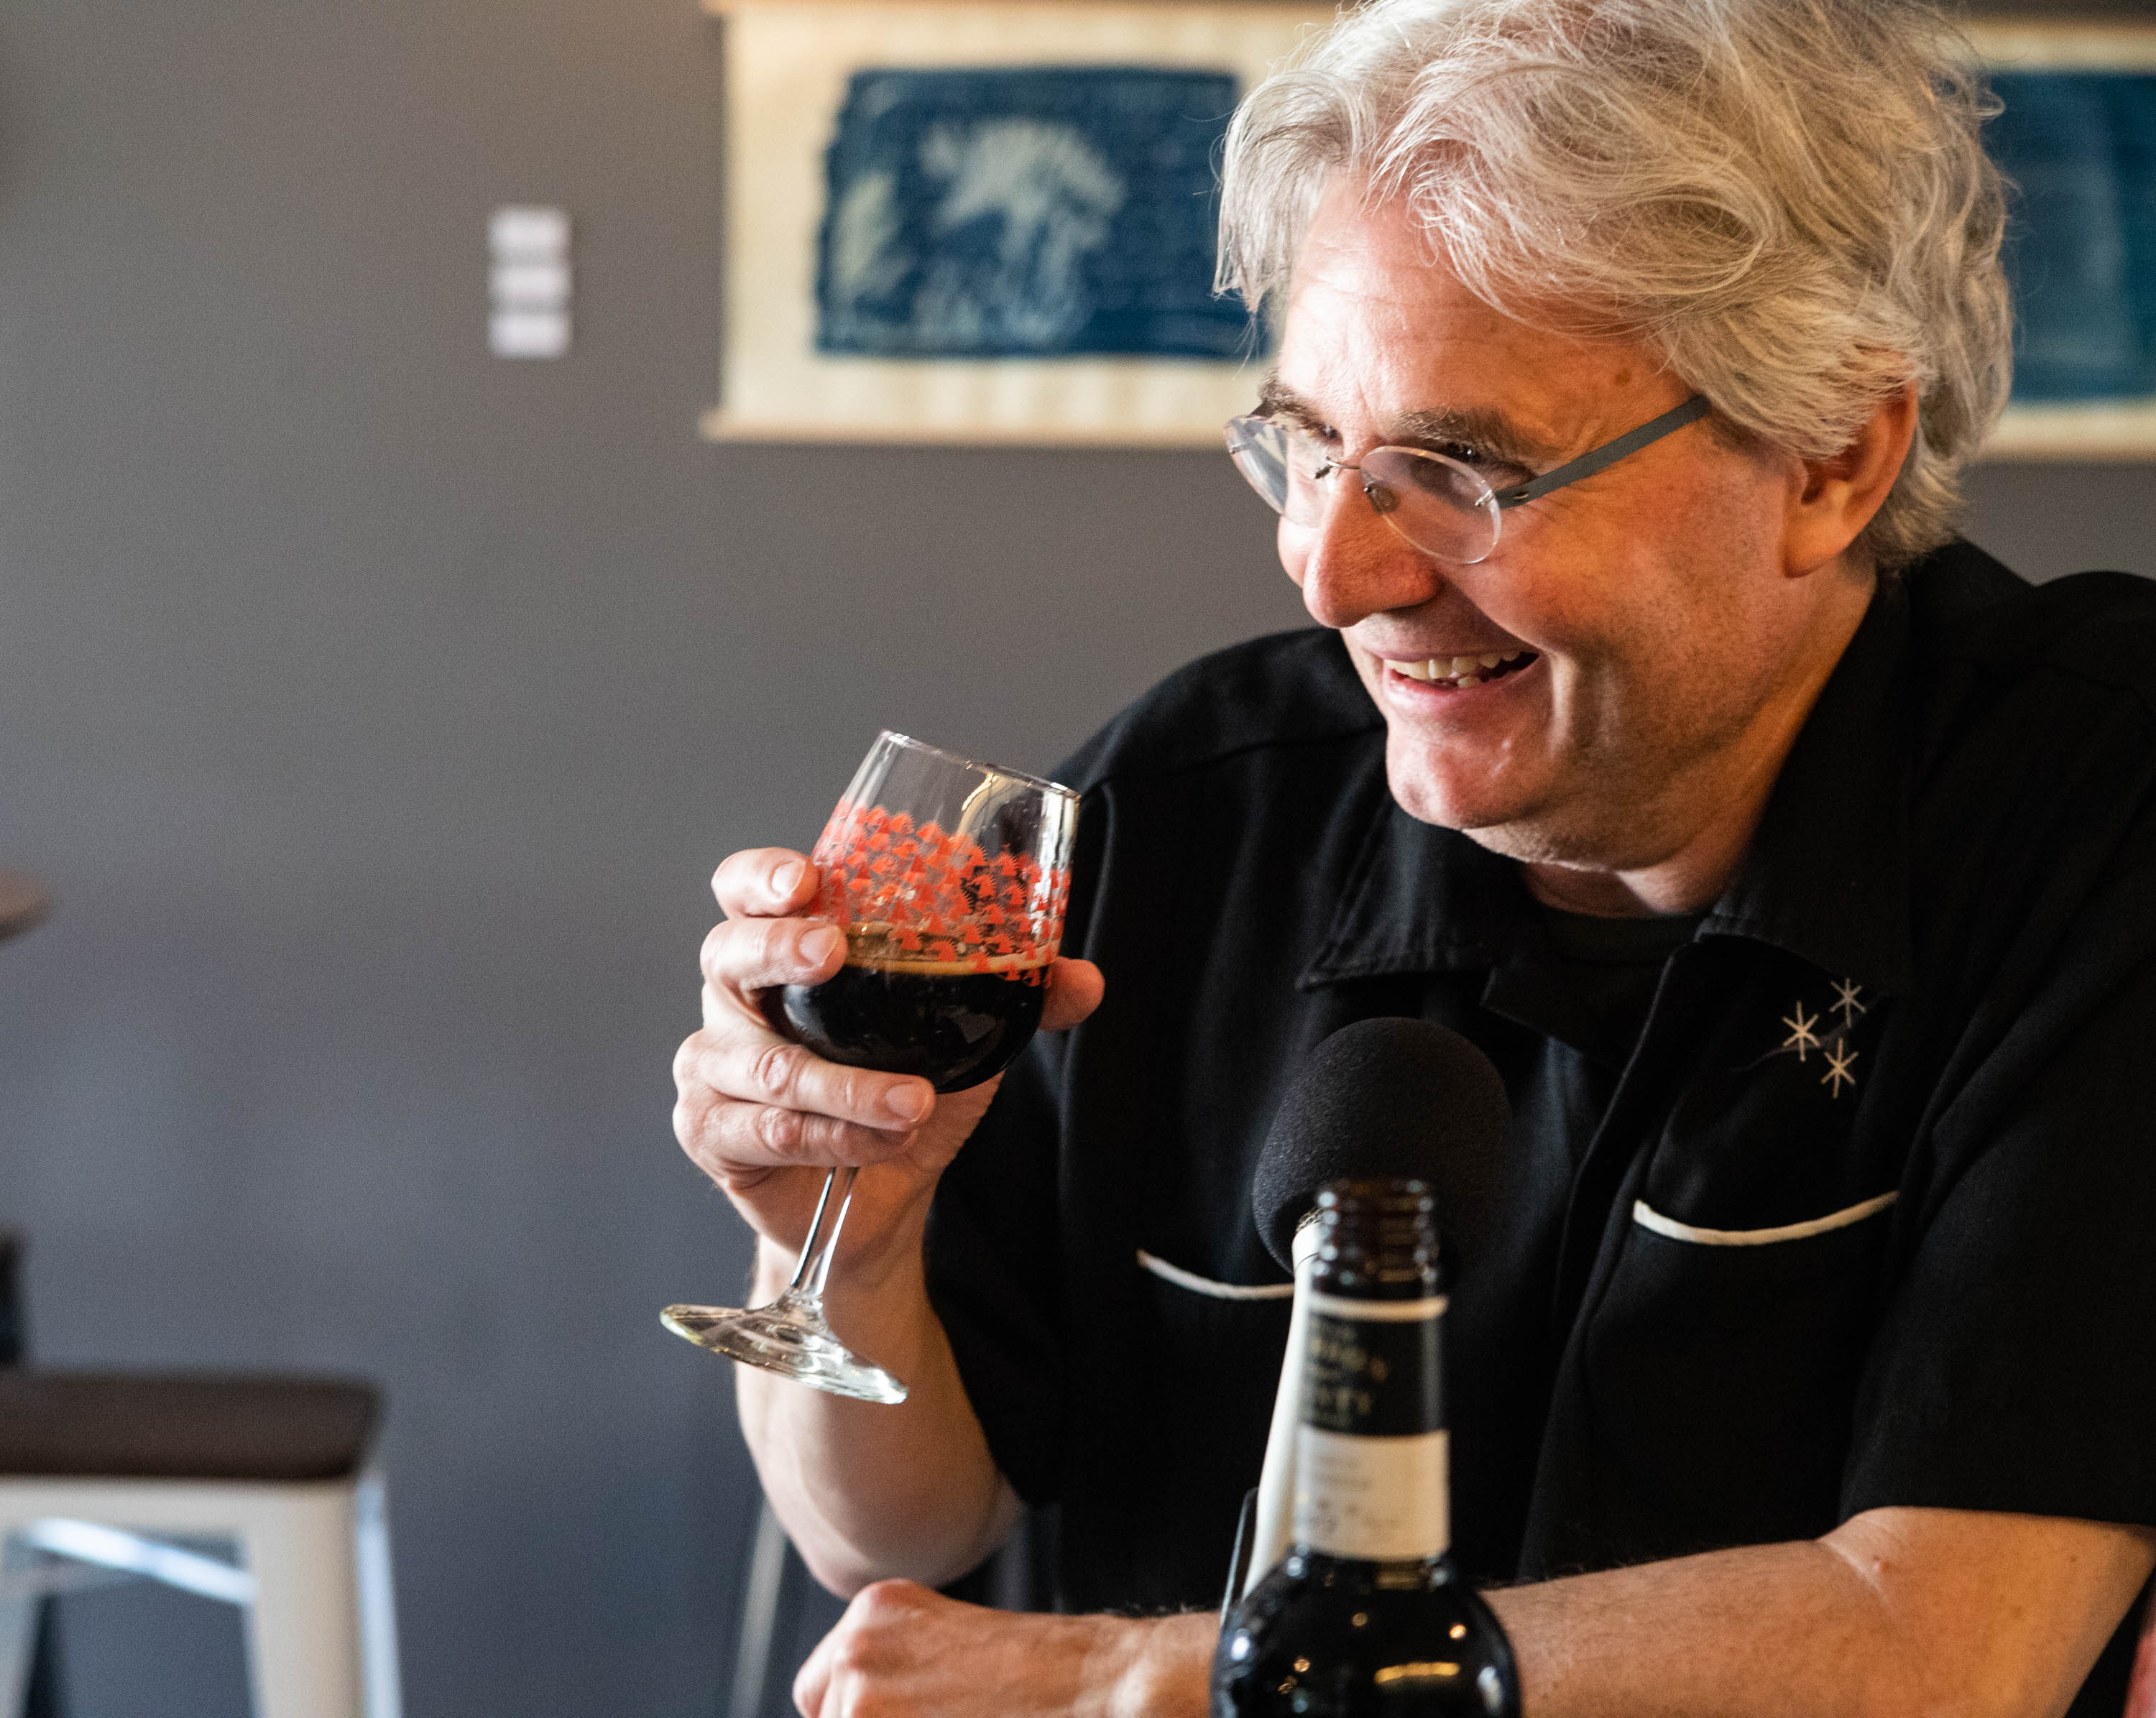 Steve Paulson samples Goose Island Bourbon County Brand Stout (2014 and 2017) while chatting at the Funk Factory Geuzeria in Madison, Wisconsin. <em>Mark Riechers (TTBOOK)</em>